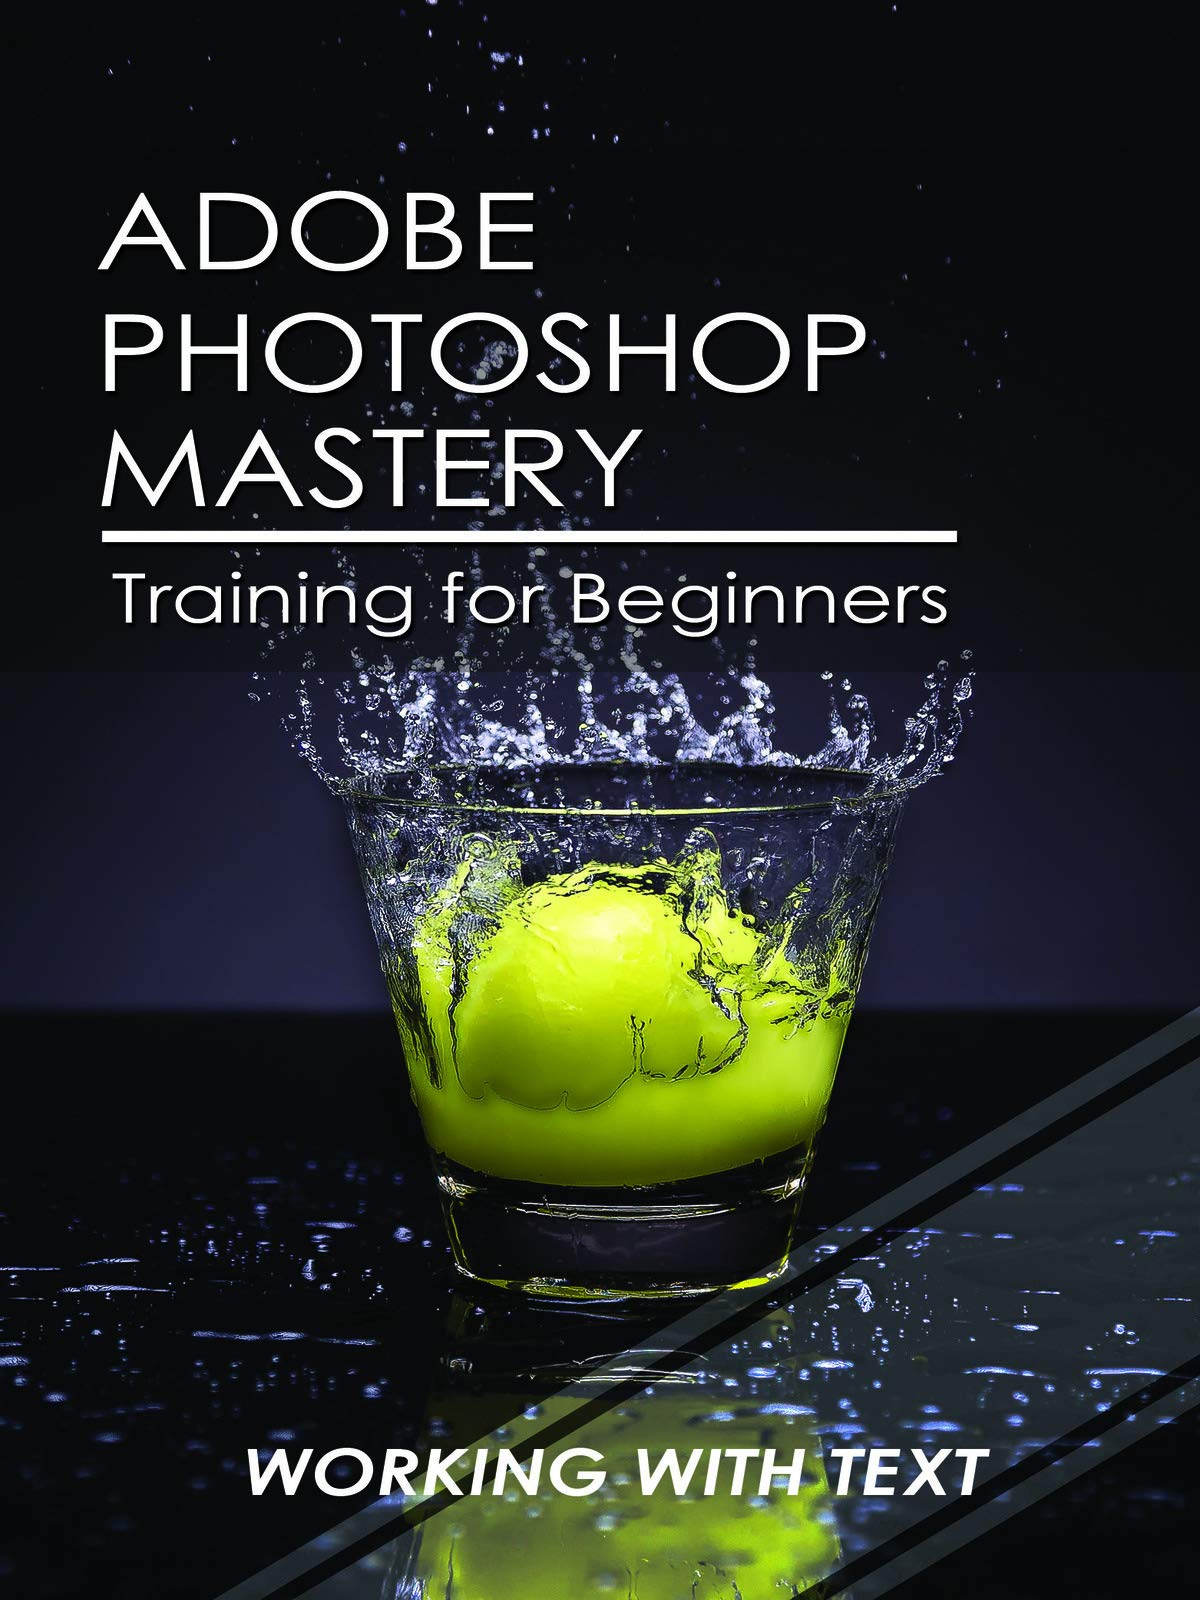 Adobe Photoshop Mastery Training For Beginners: Working With Text